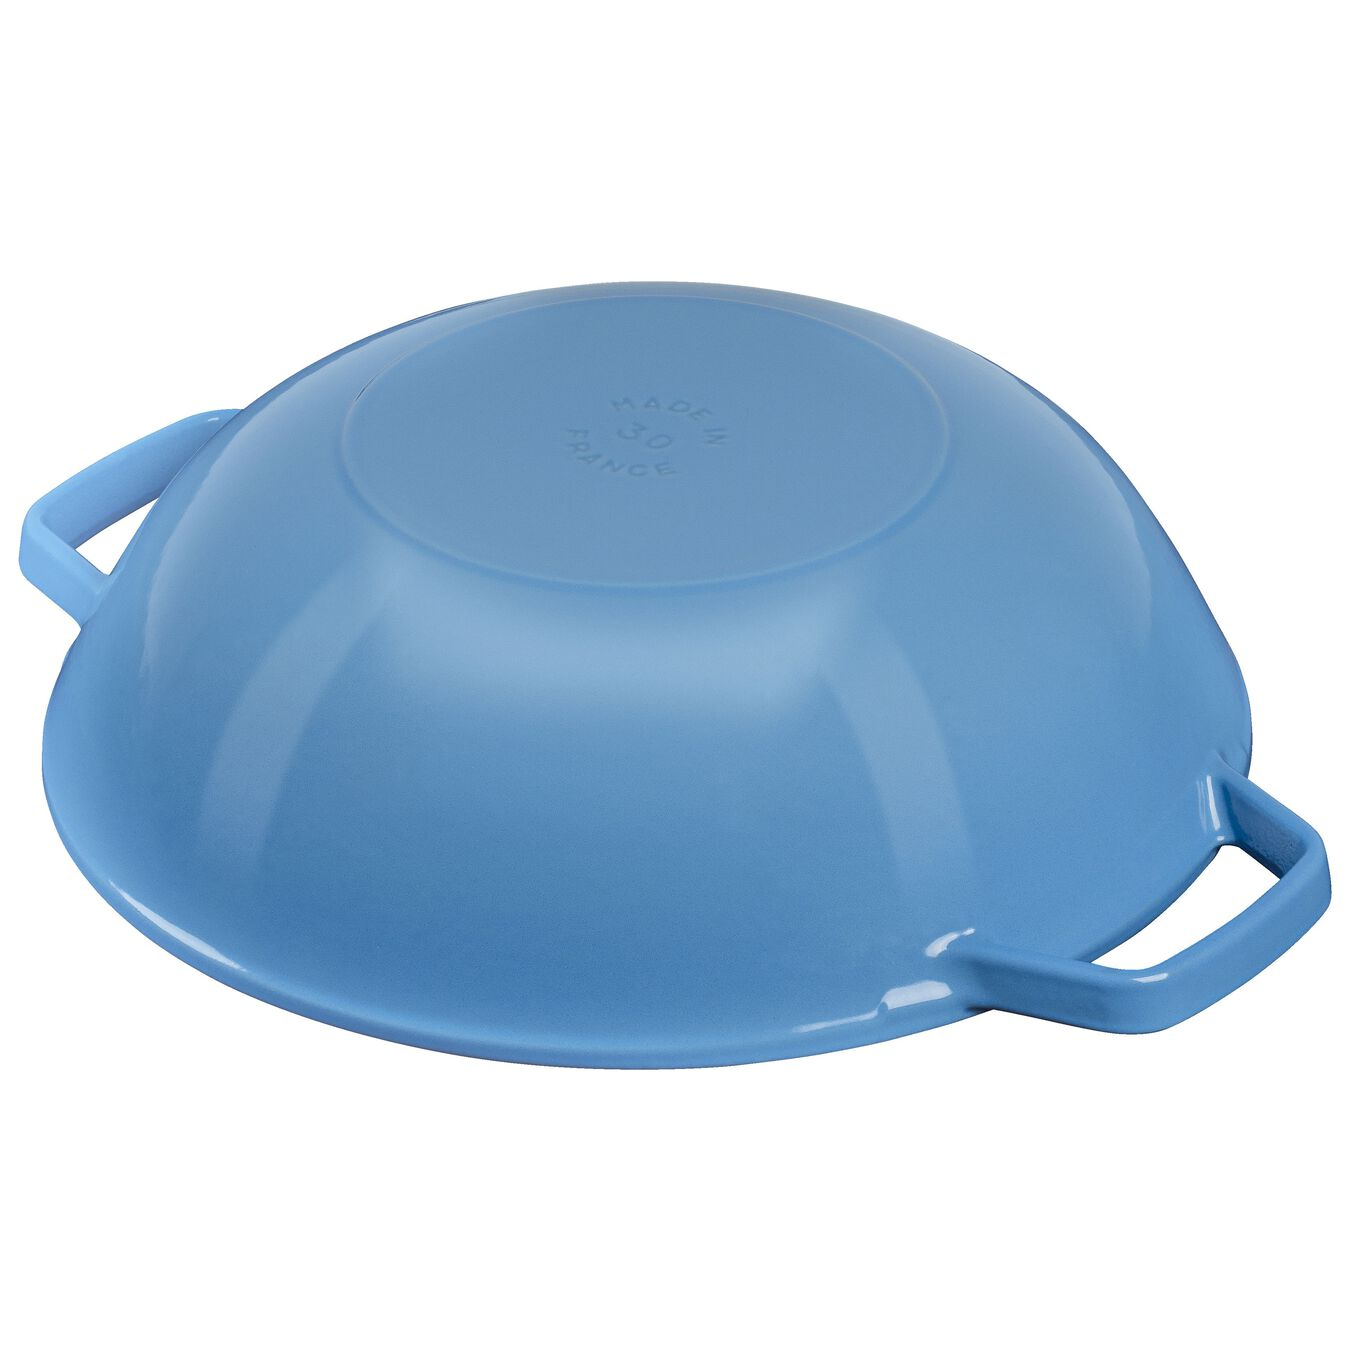 4.5-qt Perfect Pan - French Blue,,large 3